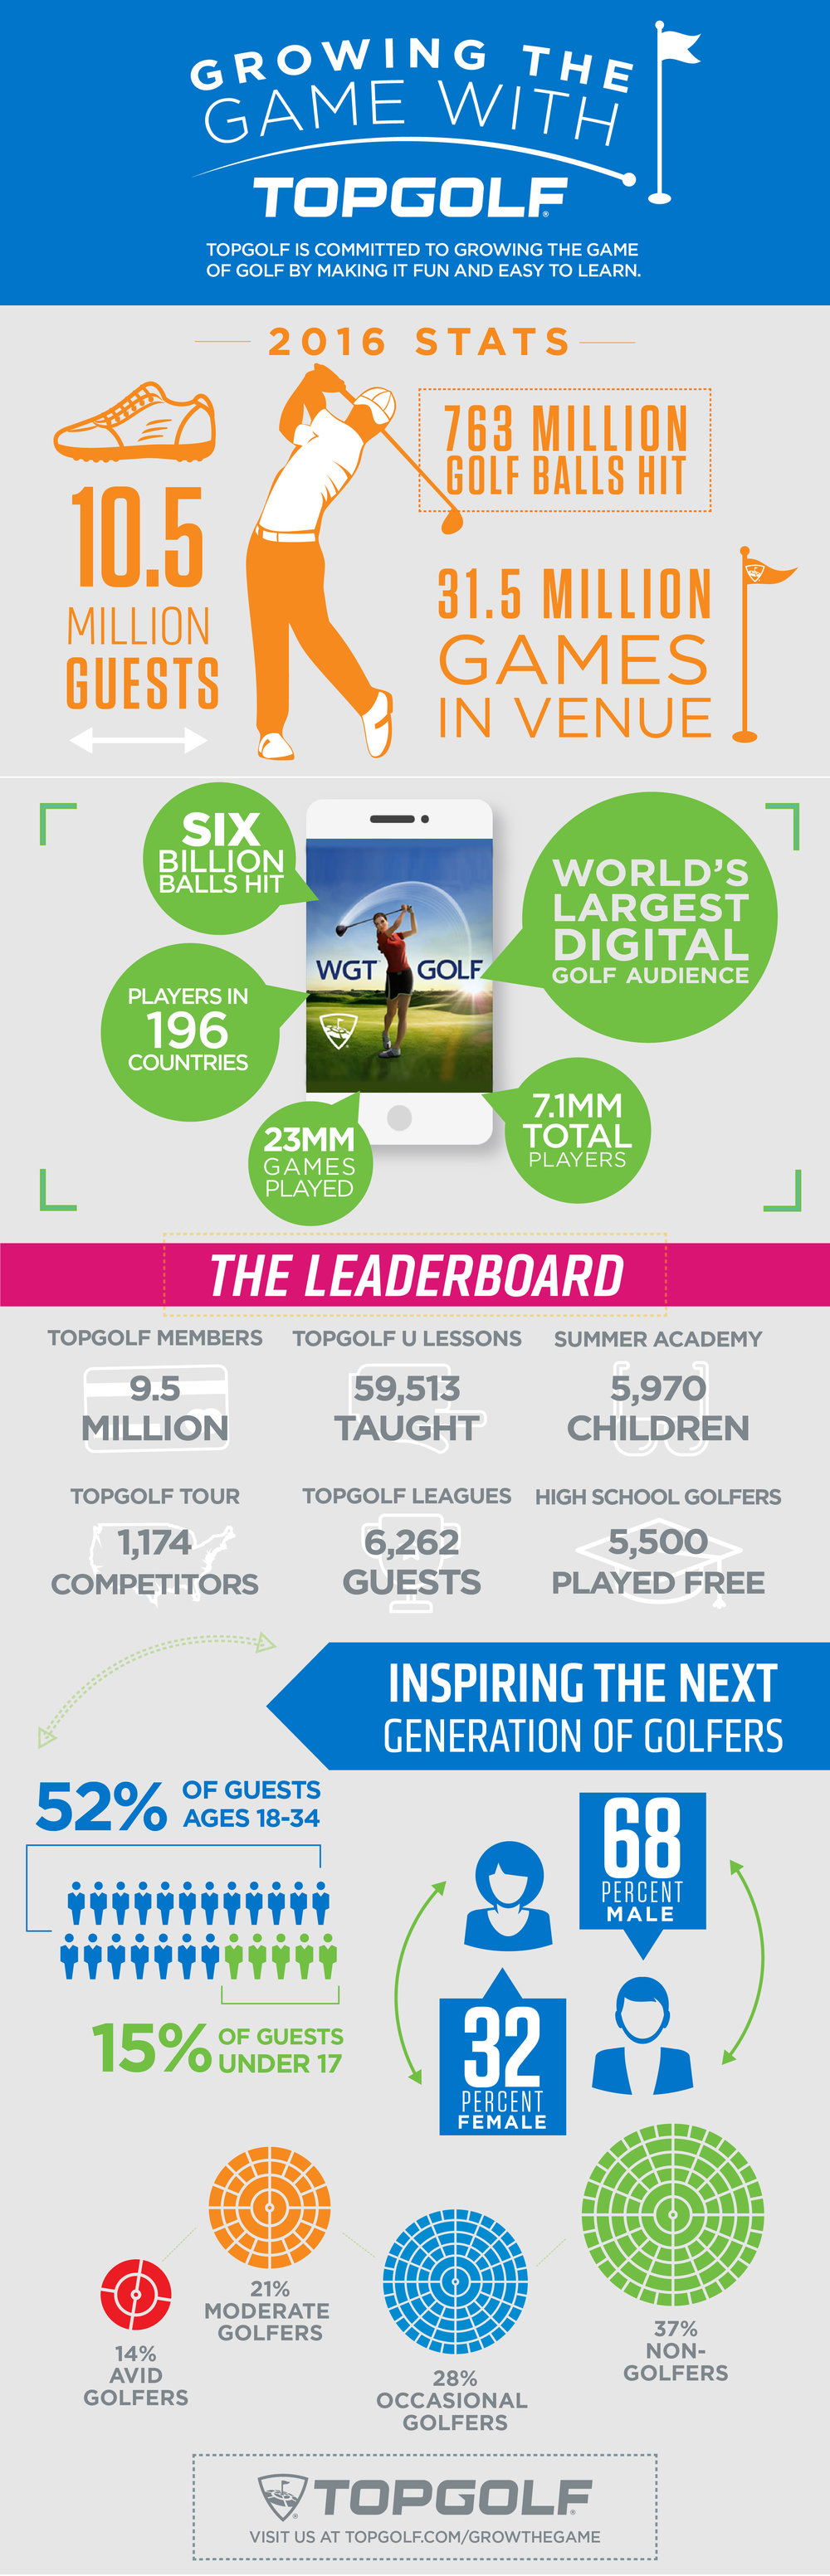 Growing the Game Infographic